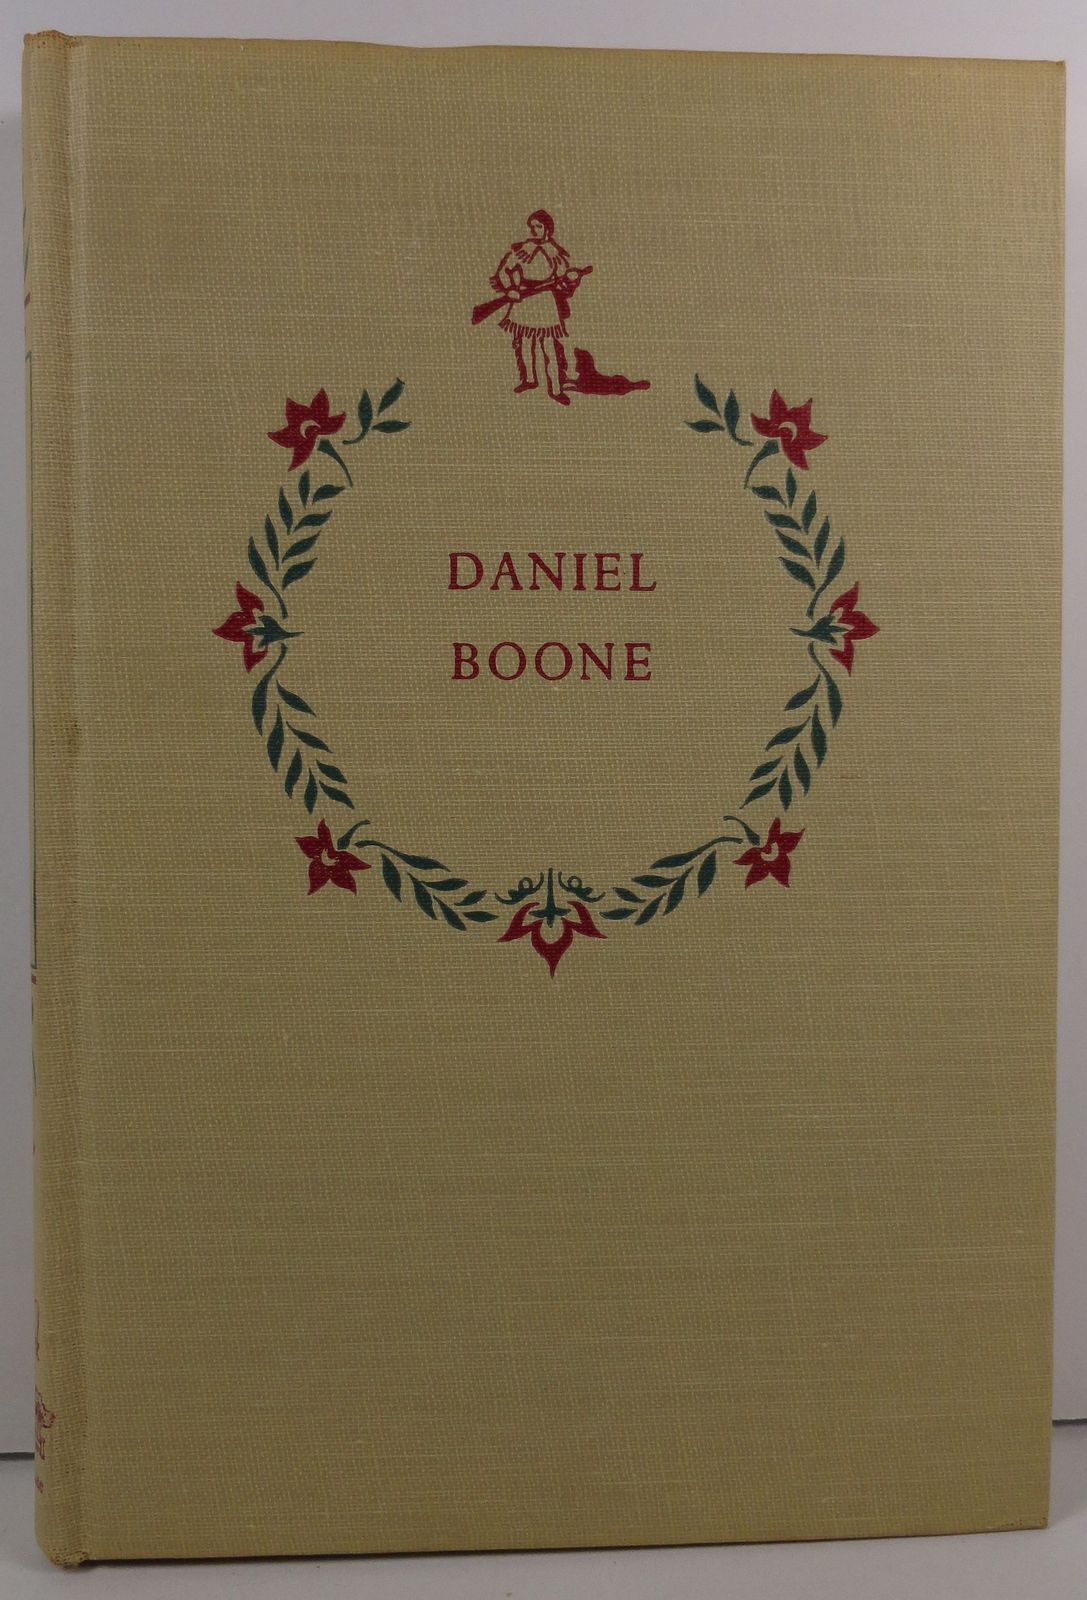 Daniel Boone Opening of the Wilderness by John Mason Brown